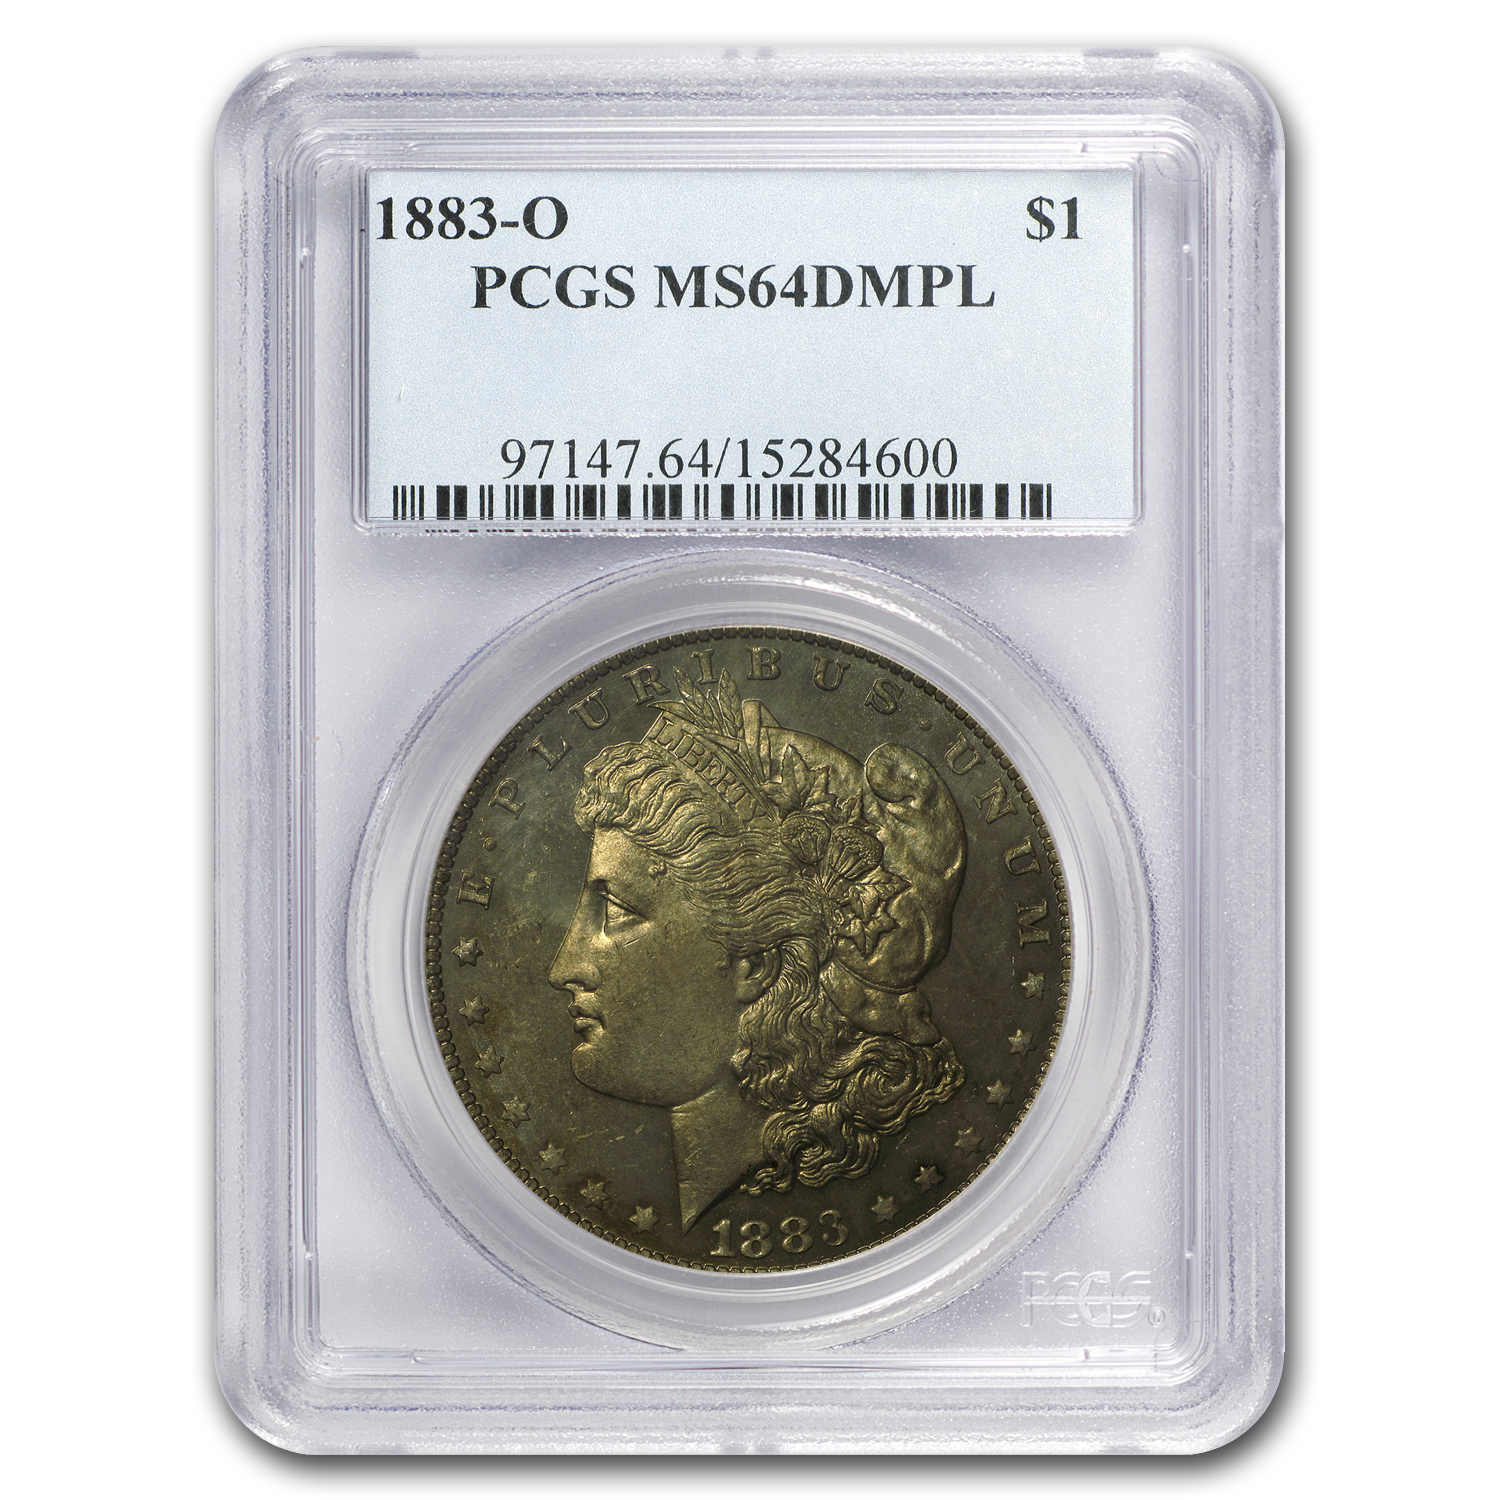 1883-O Morgan Dollar MS-64 DMPL PCGS (Toned)